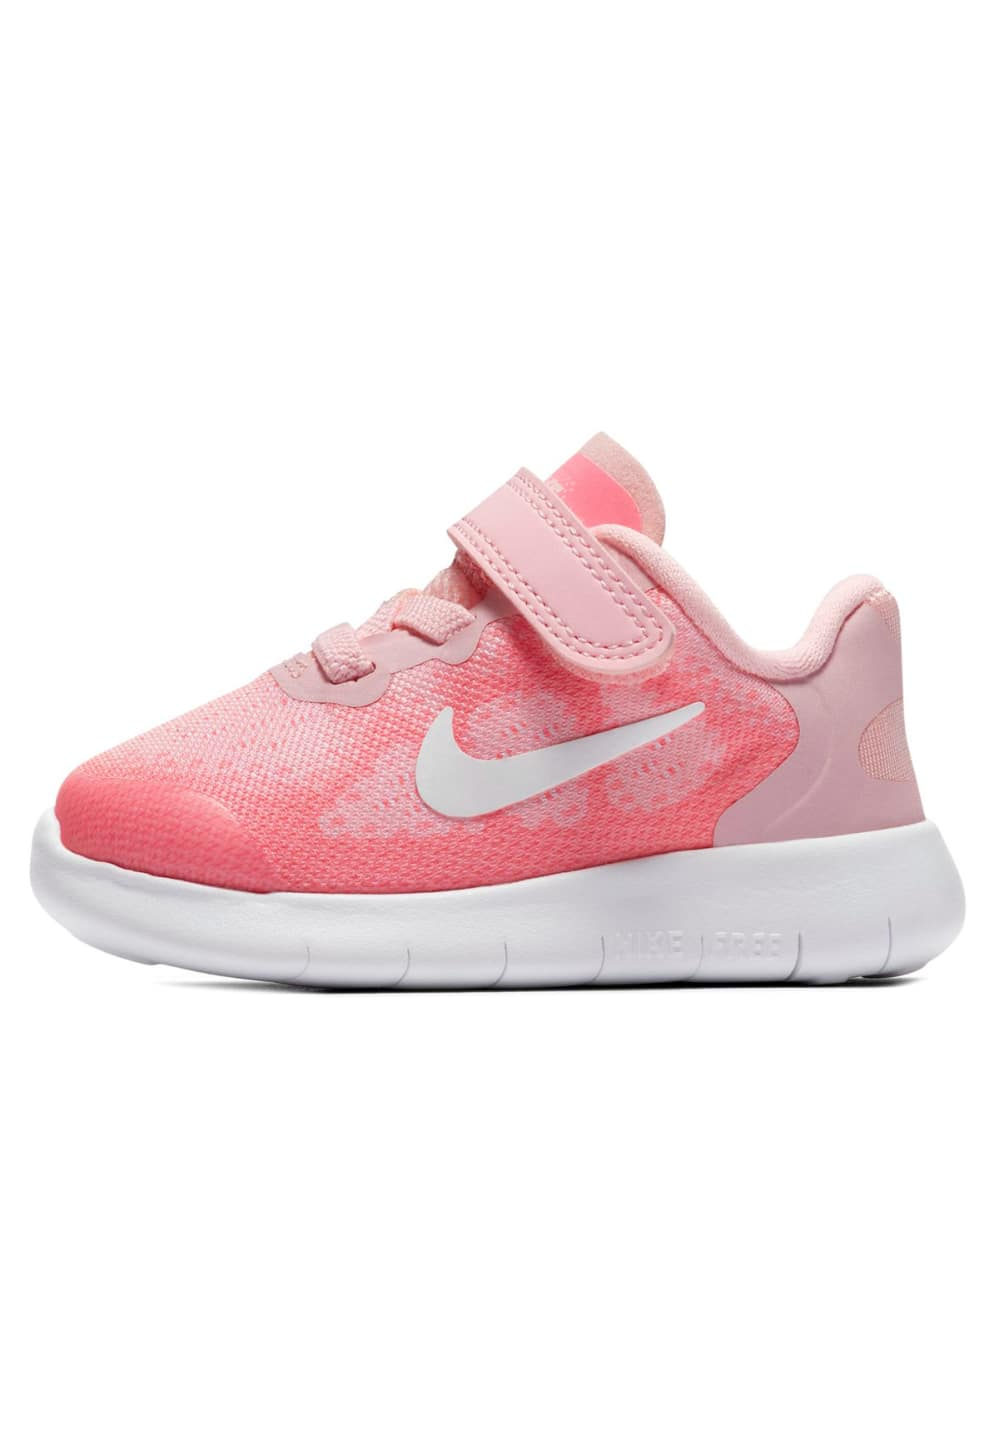 8f6dd837f652b ... Nike Free RN 2017 Toddler Shoe - Running shoes - Pink. Back to  Overview. 1  2. Previous